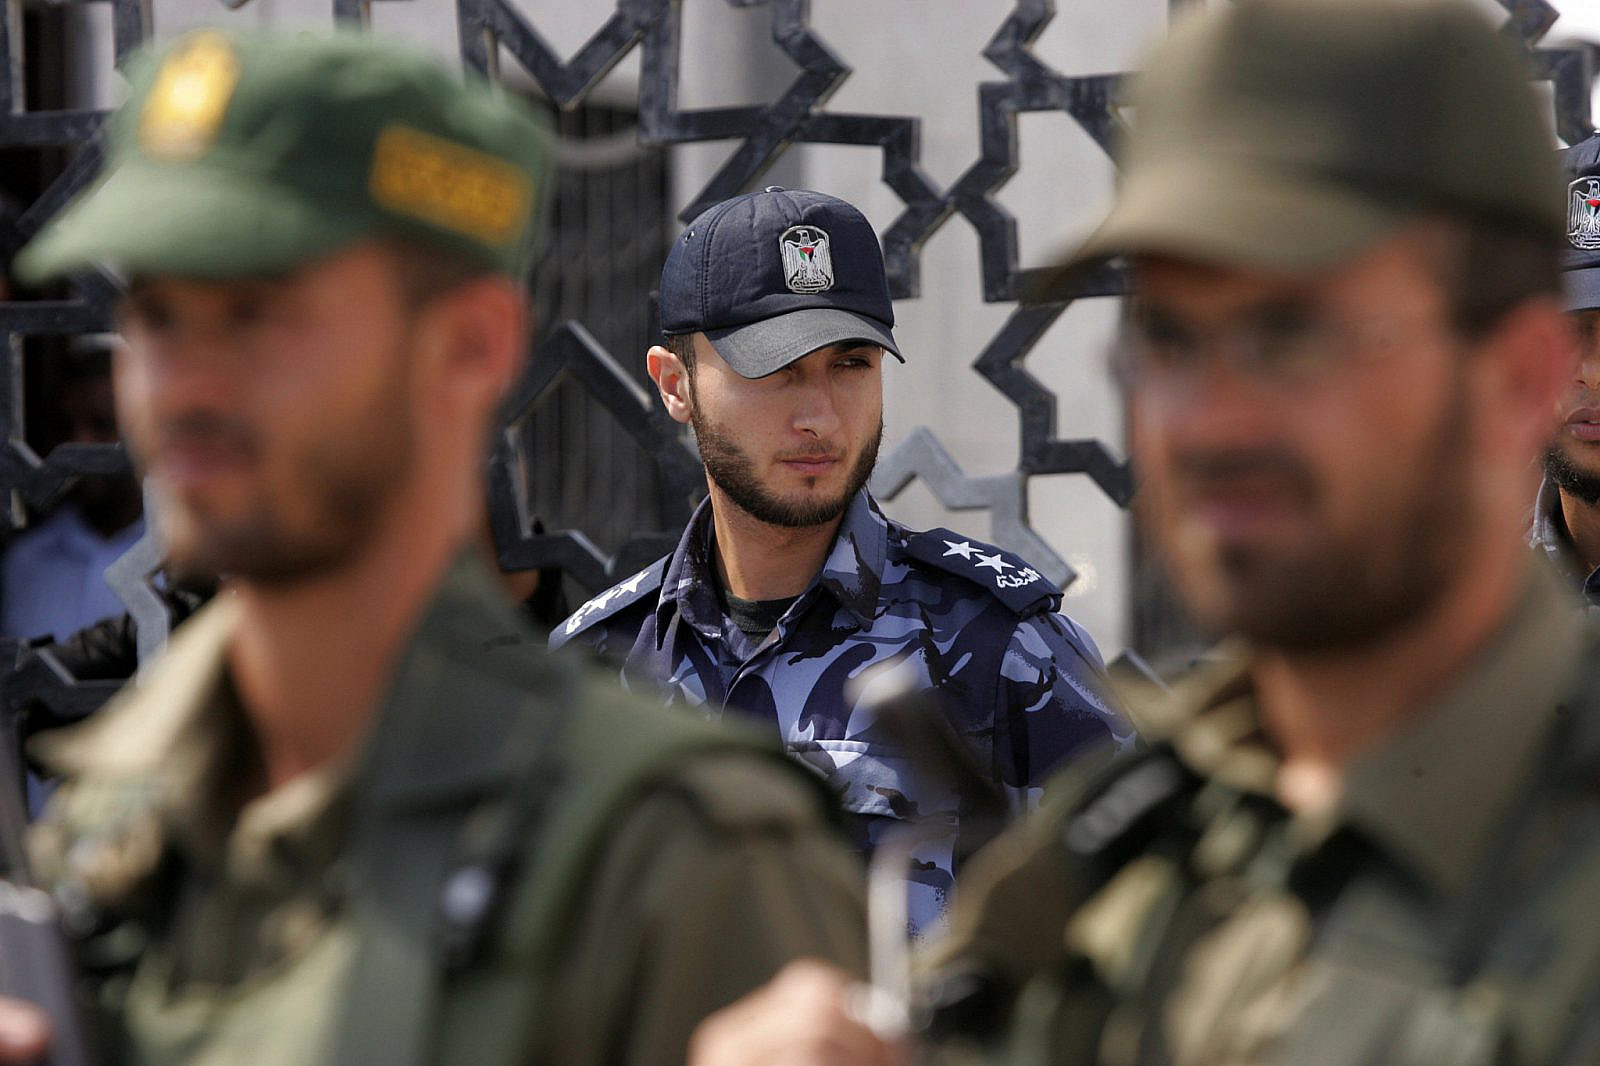 Members of Hamas' security forces stand guard in front of the Rafah border crossing in the southern Gaza Strip on September 16, 2013. (Abed Rahim Khatib/Flash90)